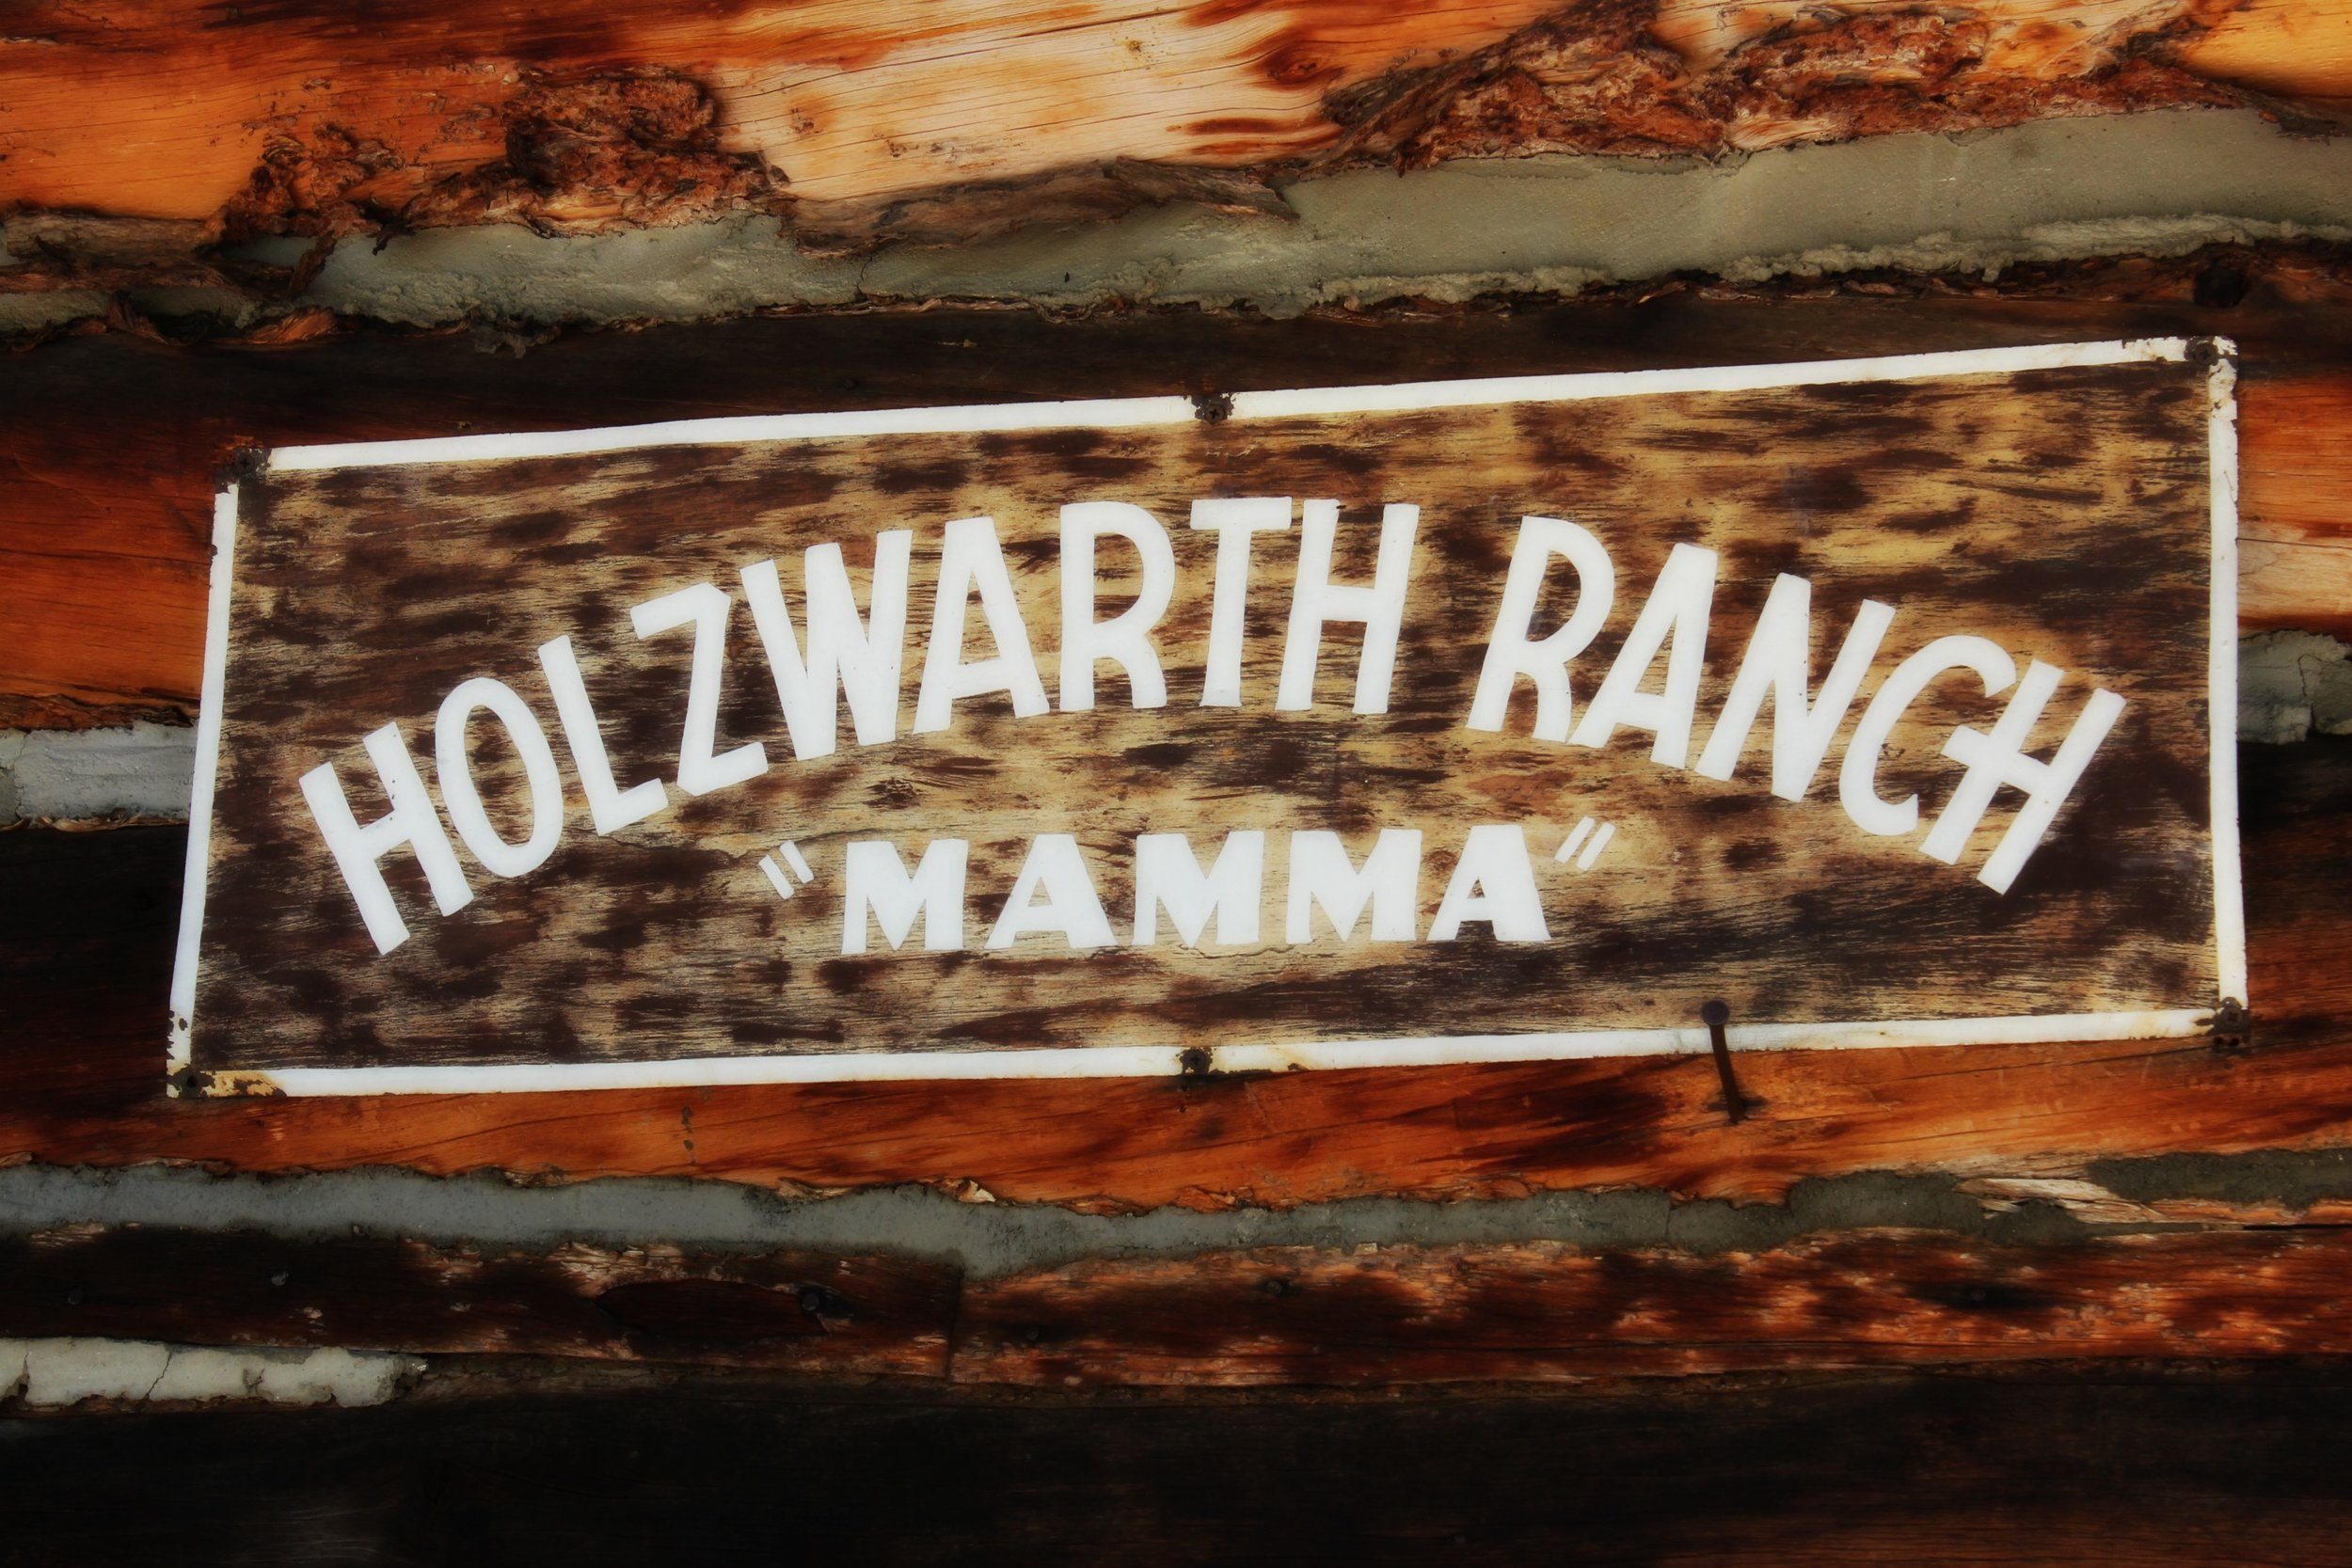 holzwarth-ranch-historic-site